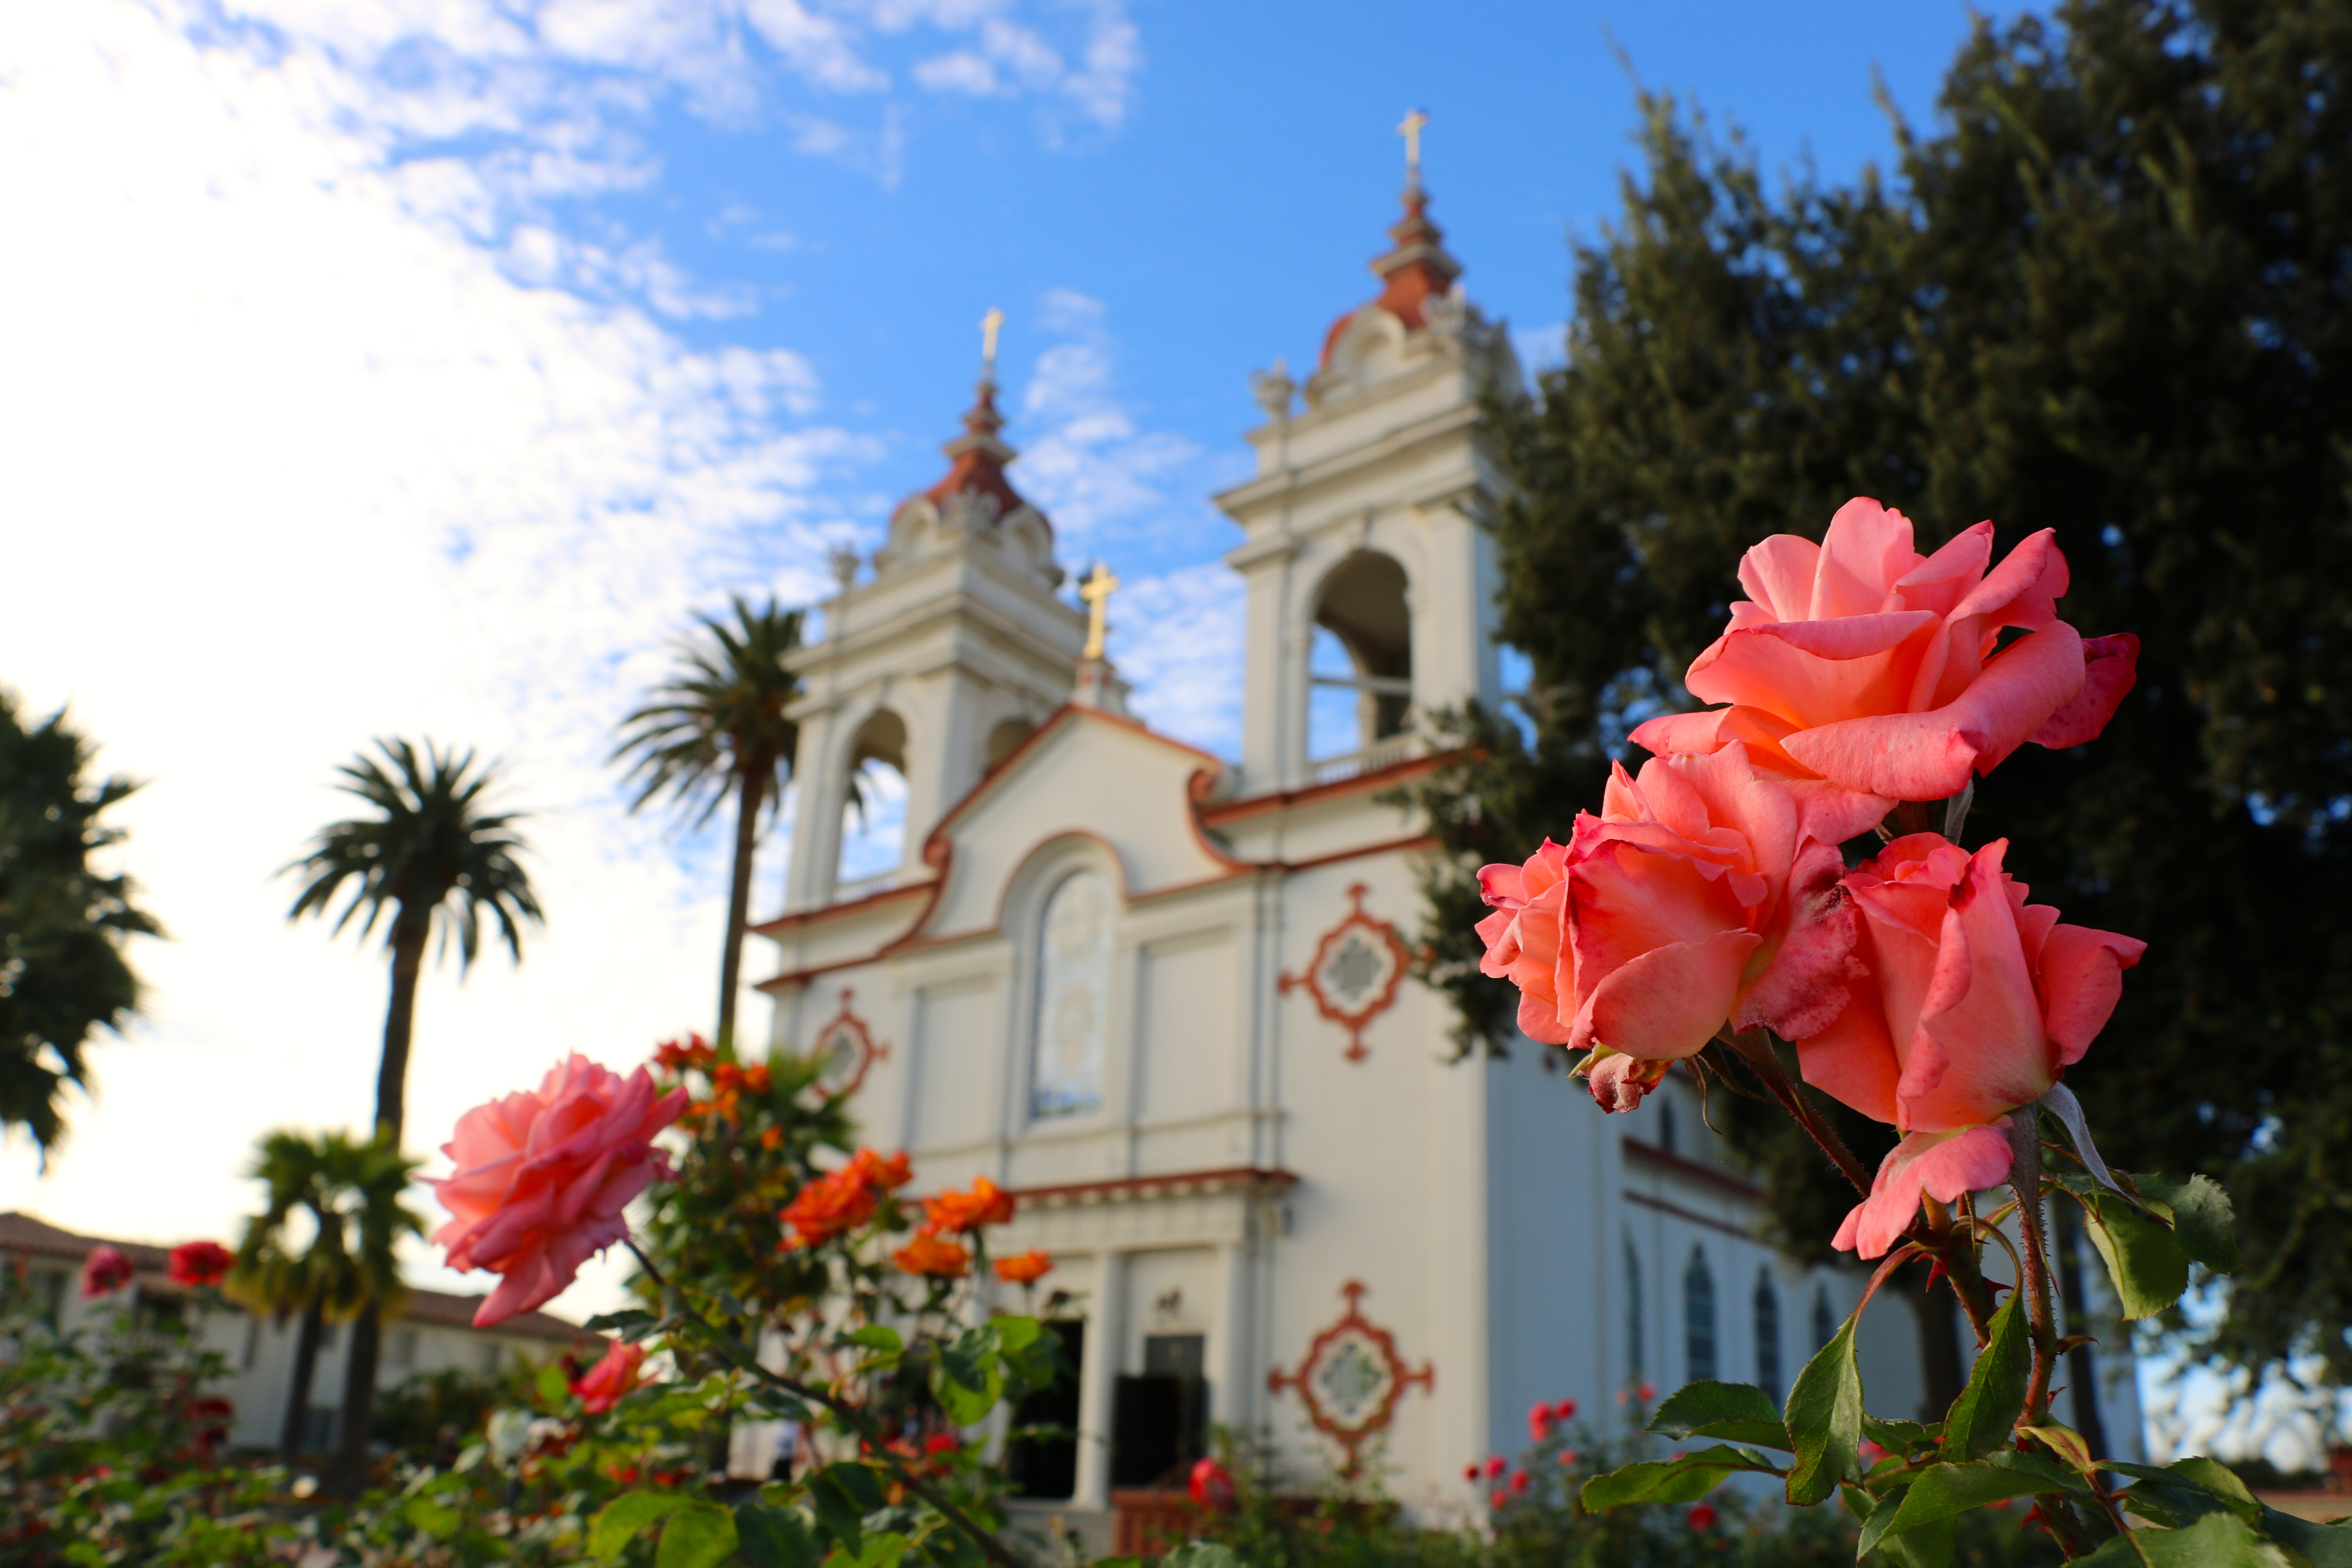 The Five Wounds Portuguese National Church is a centerpiece of a small community in east San Jose.